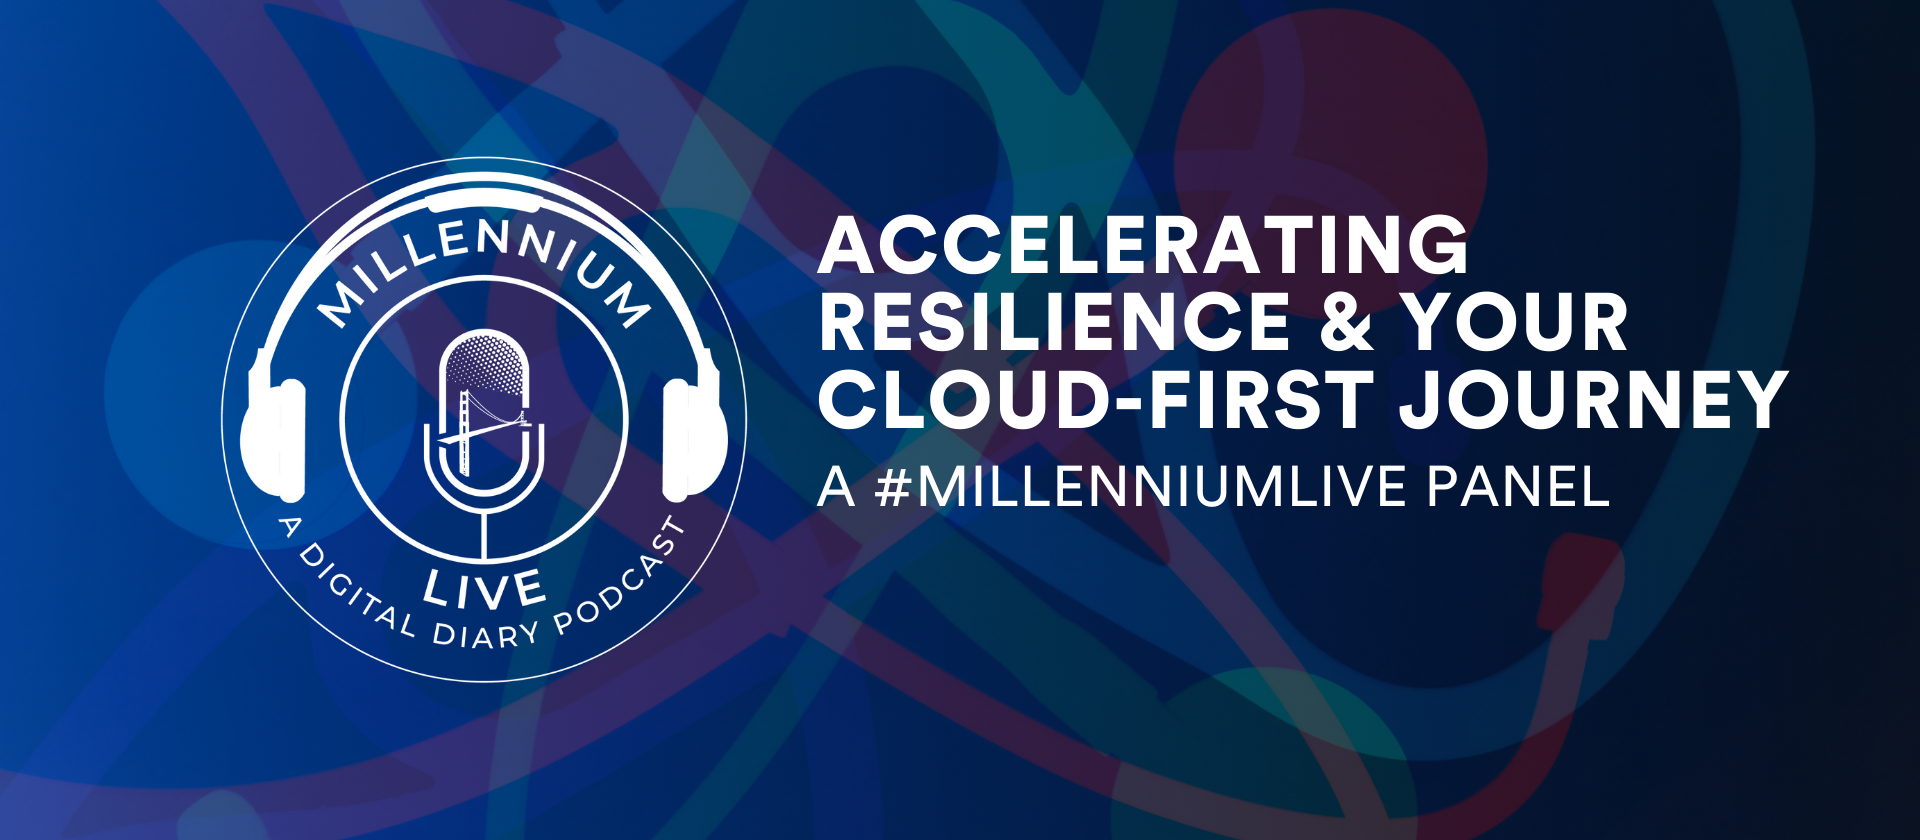 #MillenniumLive on Accelerating Resilience & Your Cloud-First Journey